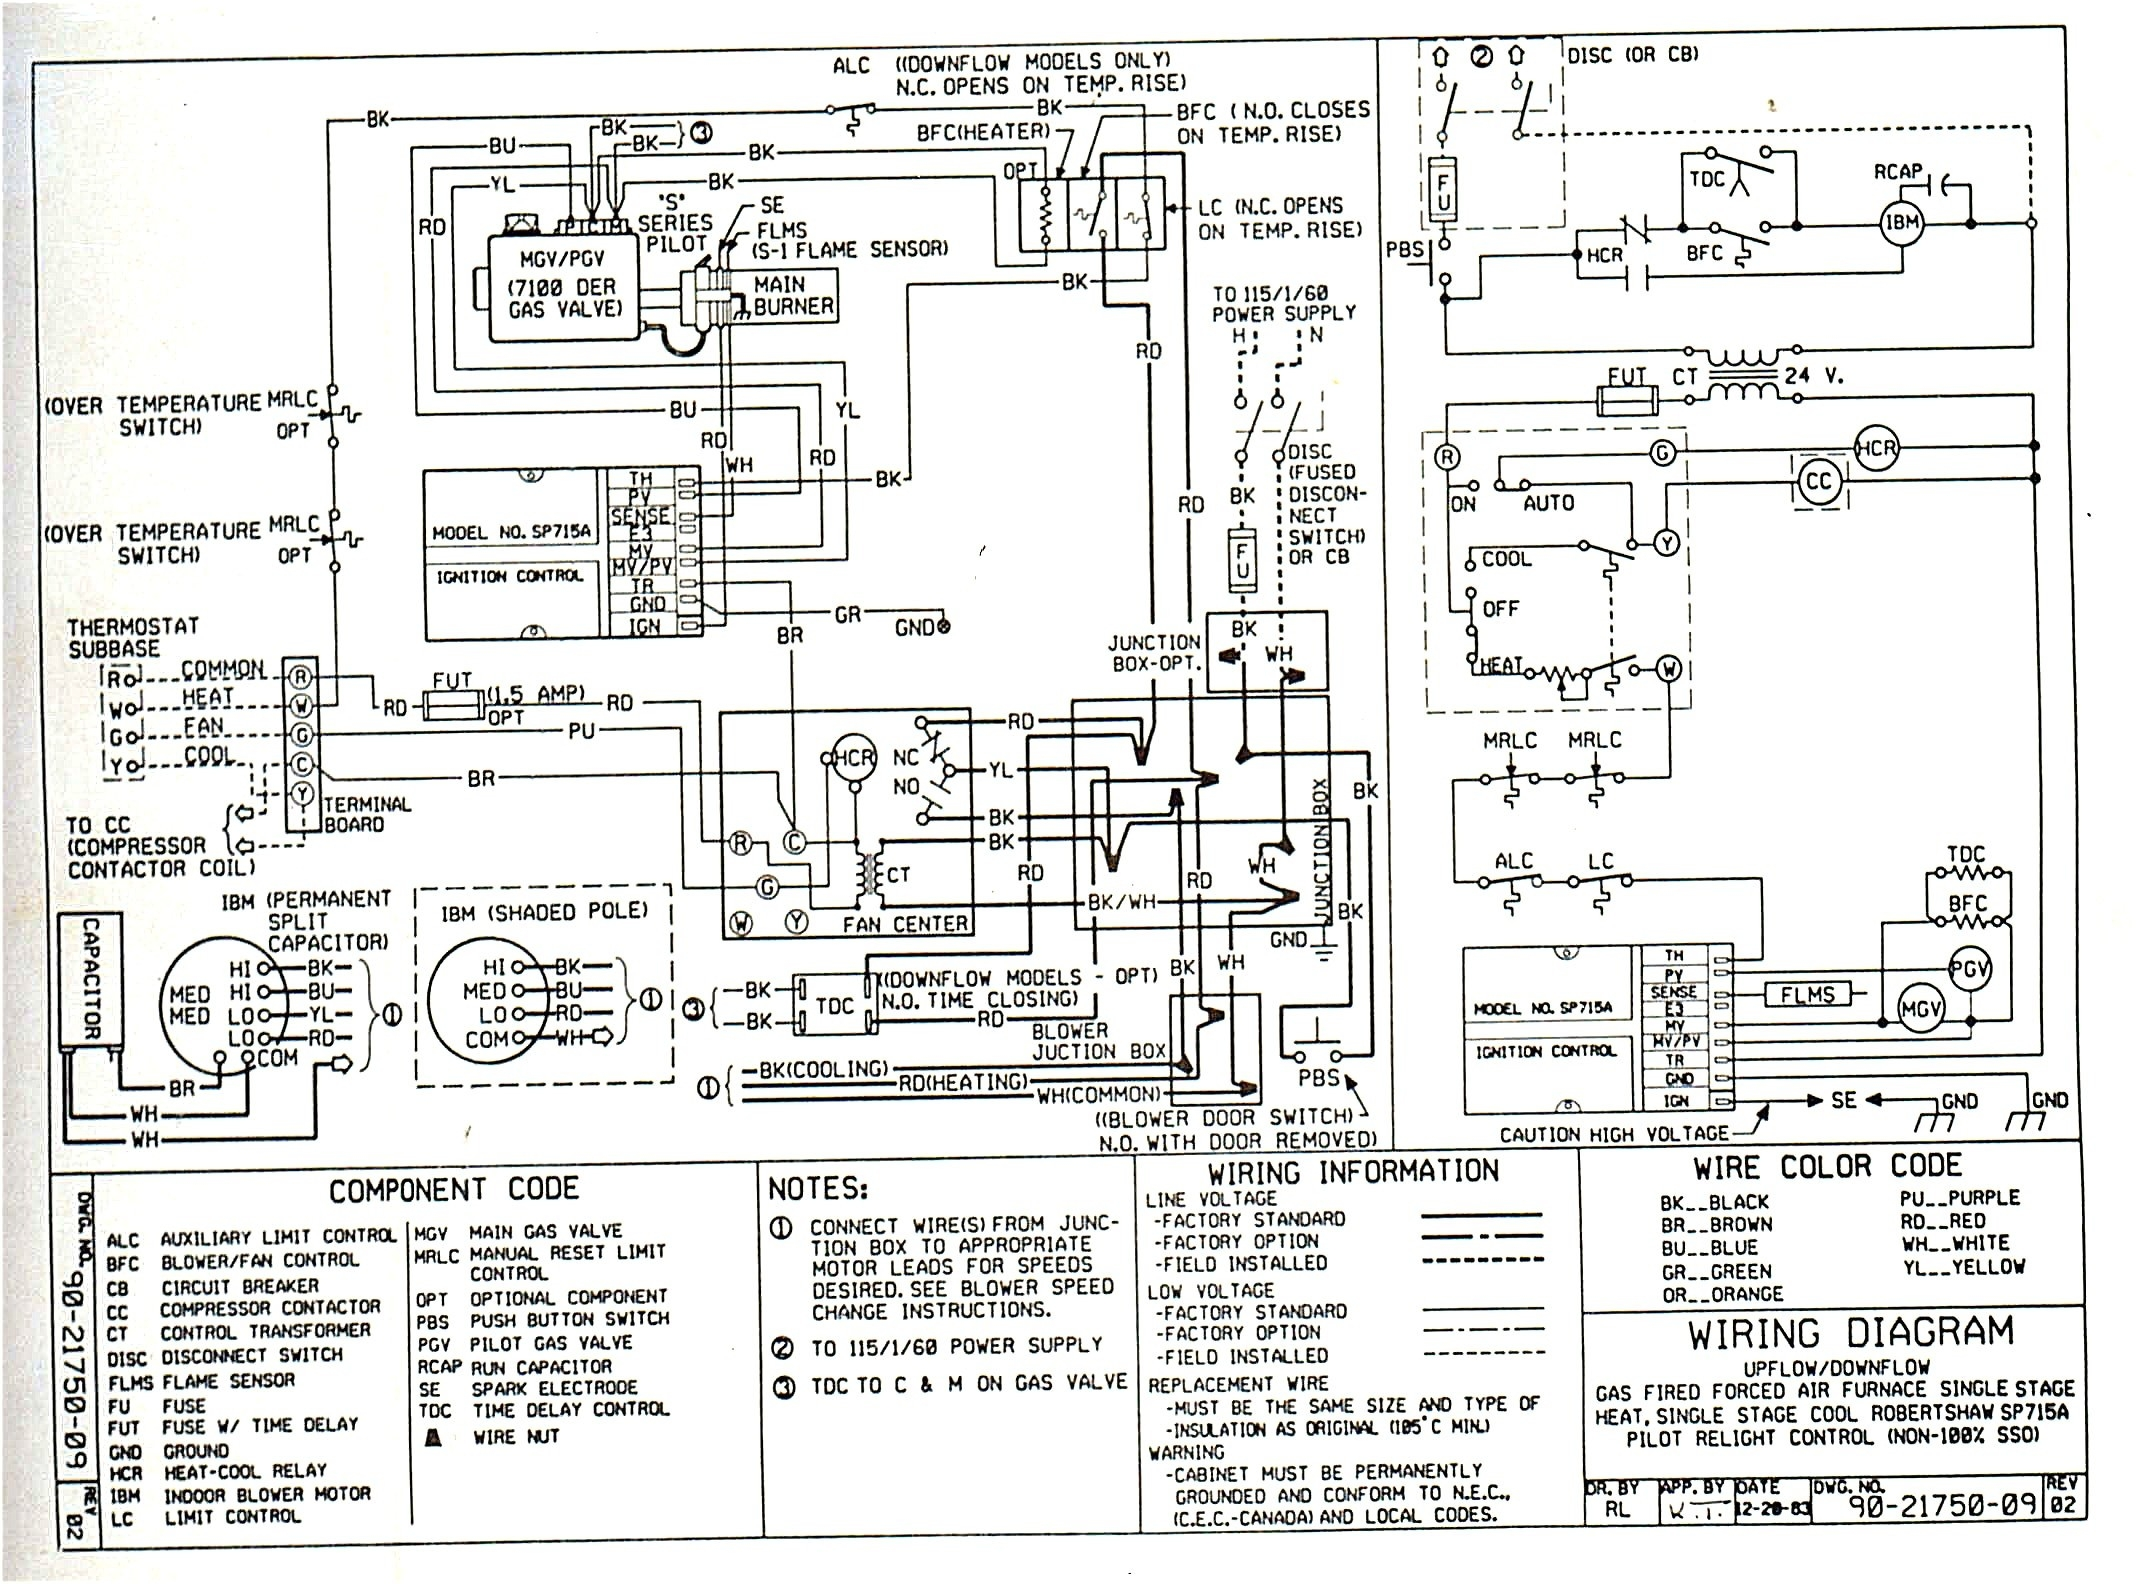 hight resolution of schematic tempstar tempstar for wiring heil nulk075dg05 wiringschematic tempstar tempstar for wiring heil nulk075dg05 wiring diagram